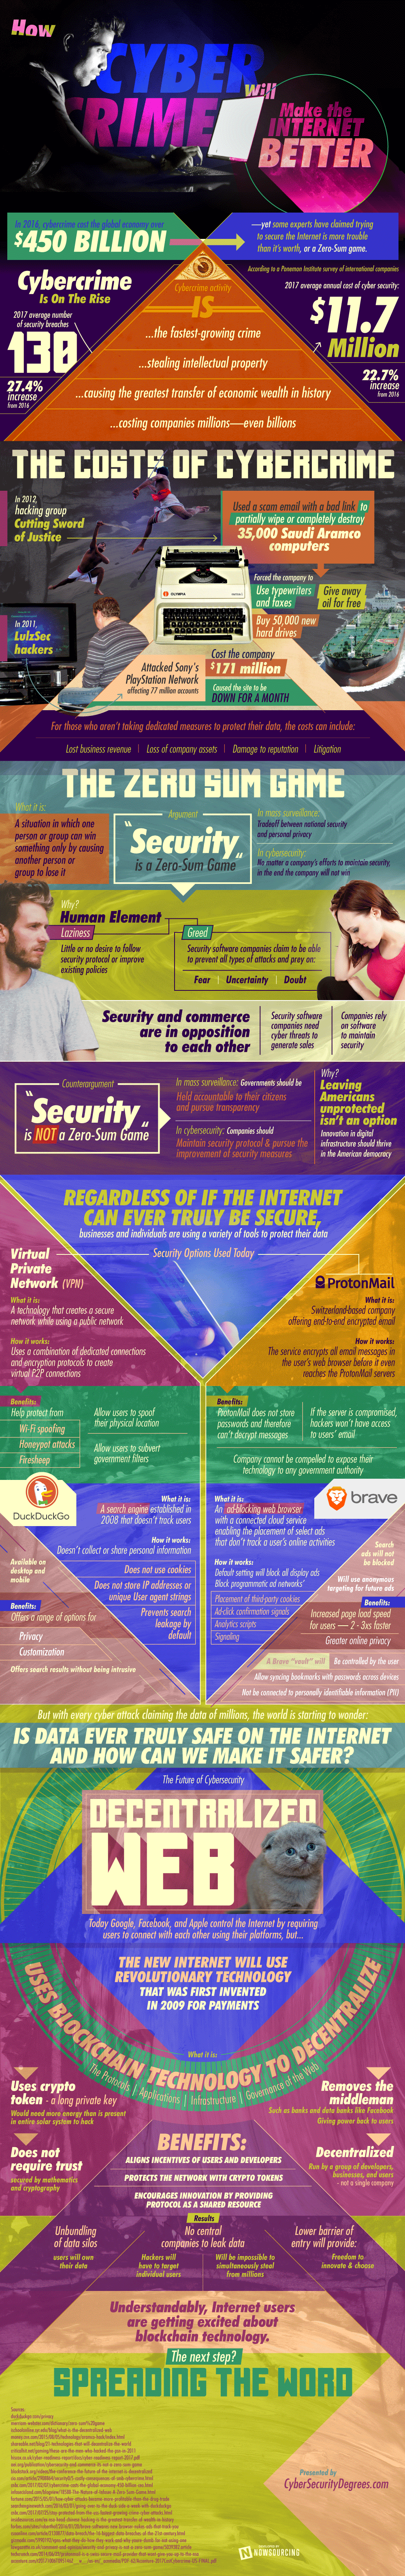 How Cyber Crime Will Make the Internet Better [Infographic]